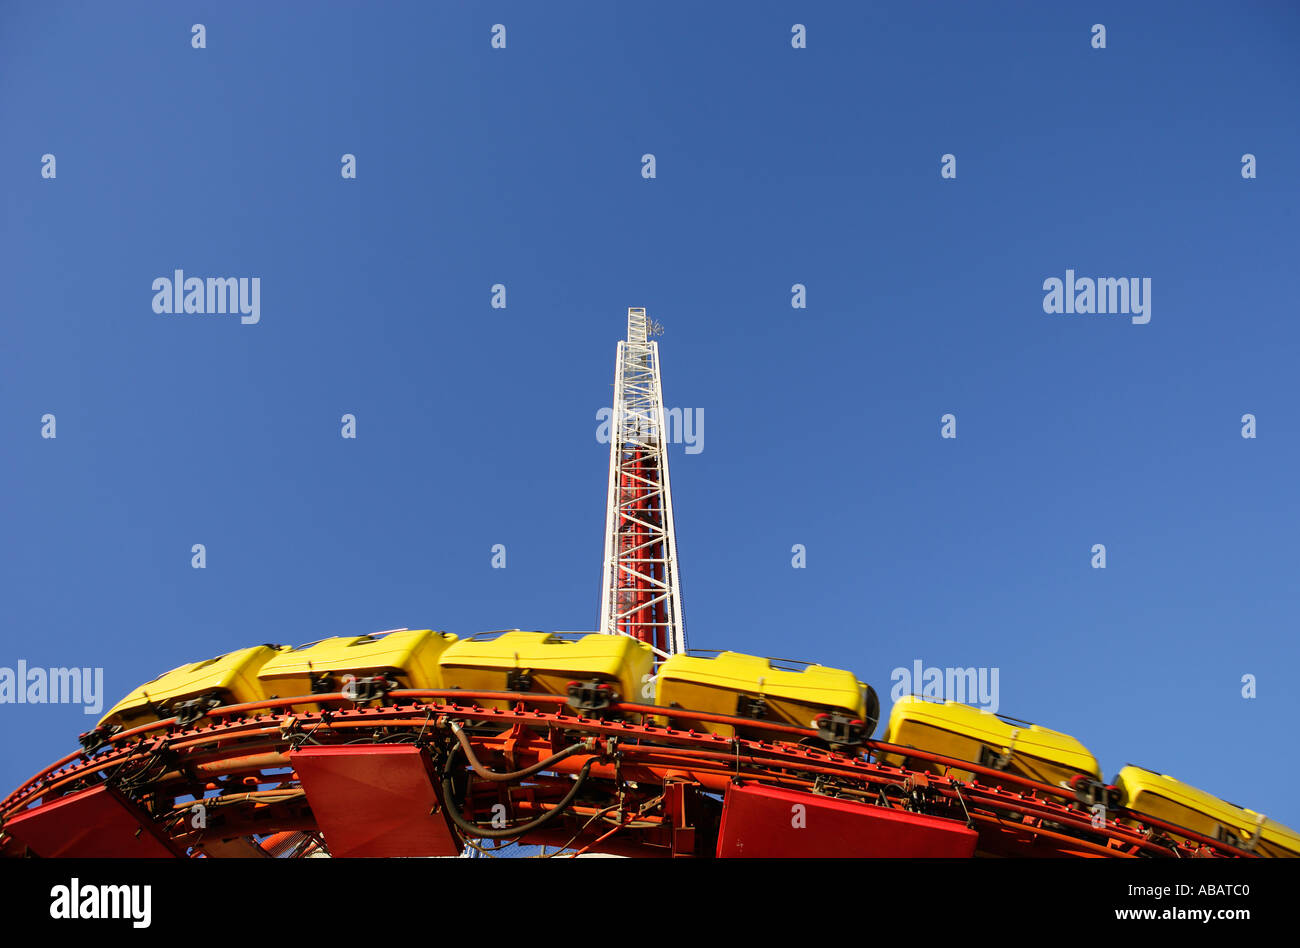 Las Vegas The High Roller and Big Shot rides on The Stratosphere Hotel Casino - Stock Image